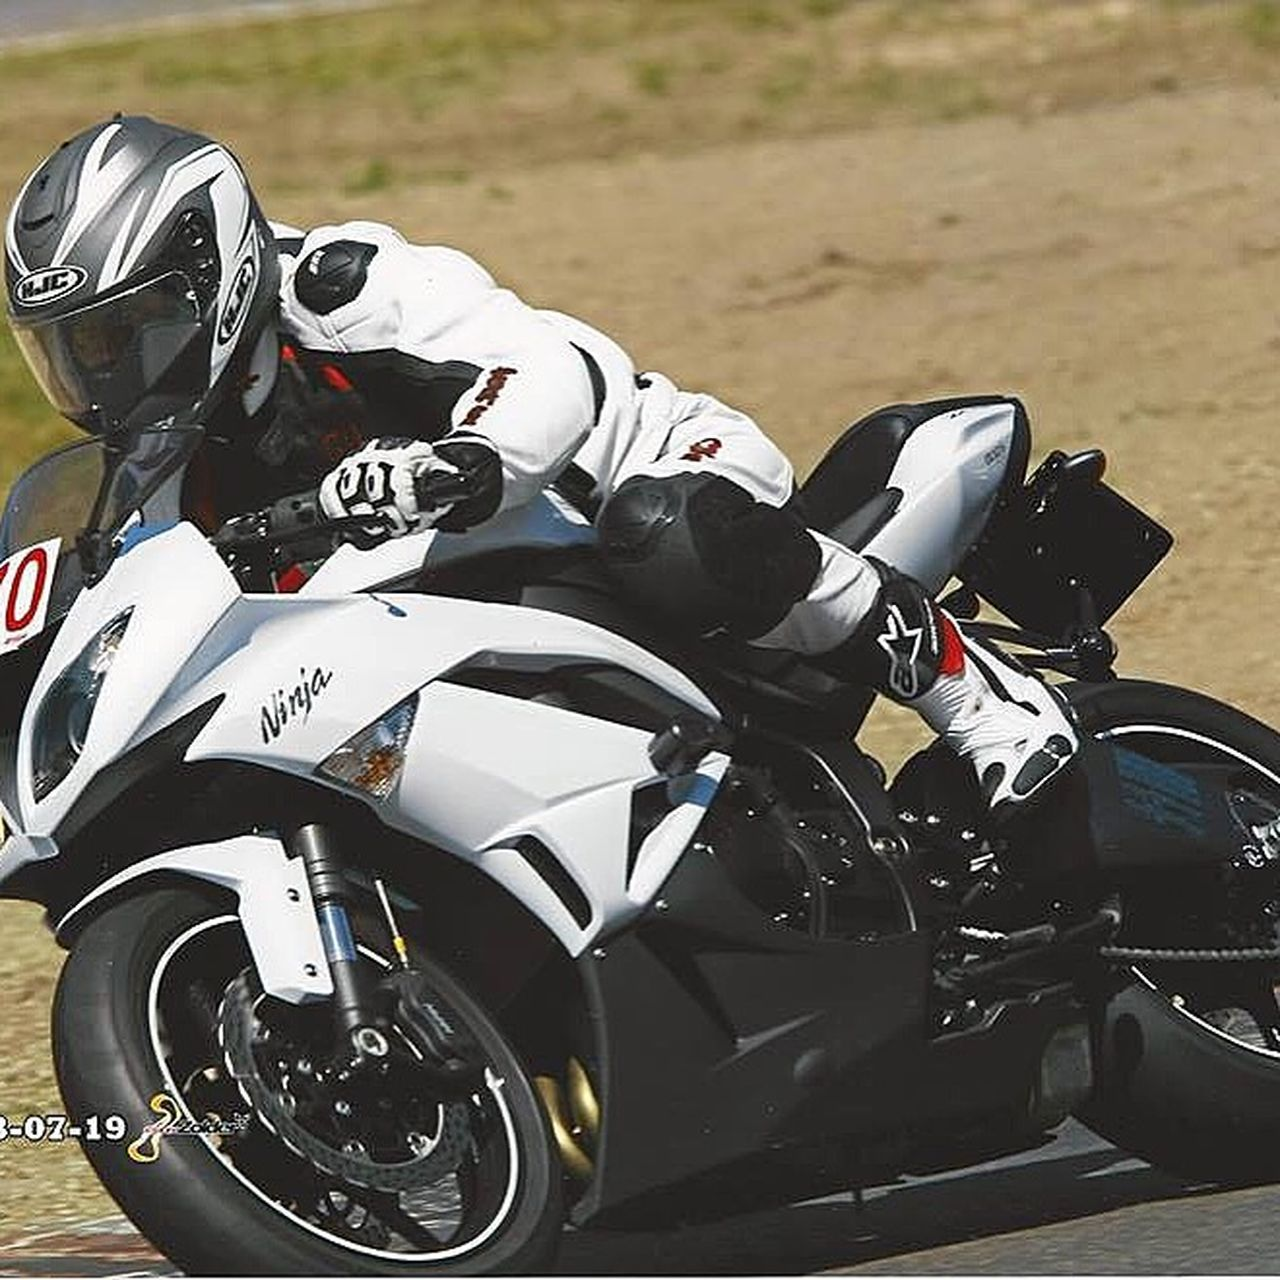 motorsport, motorcycle, sports race, crash helmet, sport, motorcycle racing, competition, speed, professional sport, sports helmet, men, mode of transport, riding, only men, people, auto racing, adults only, headwear, extreme sports, contest, group of people, outdoors, adult, biker, sports track, competitive sport, sportsman, motocross, day